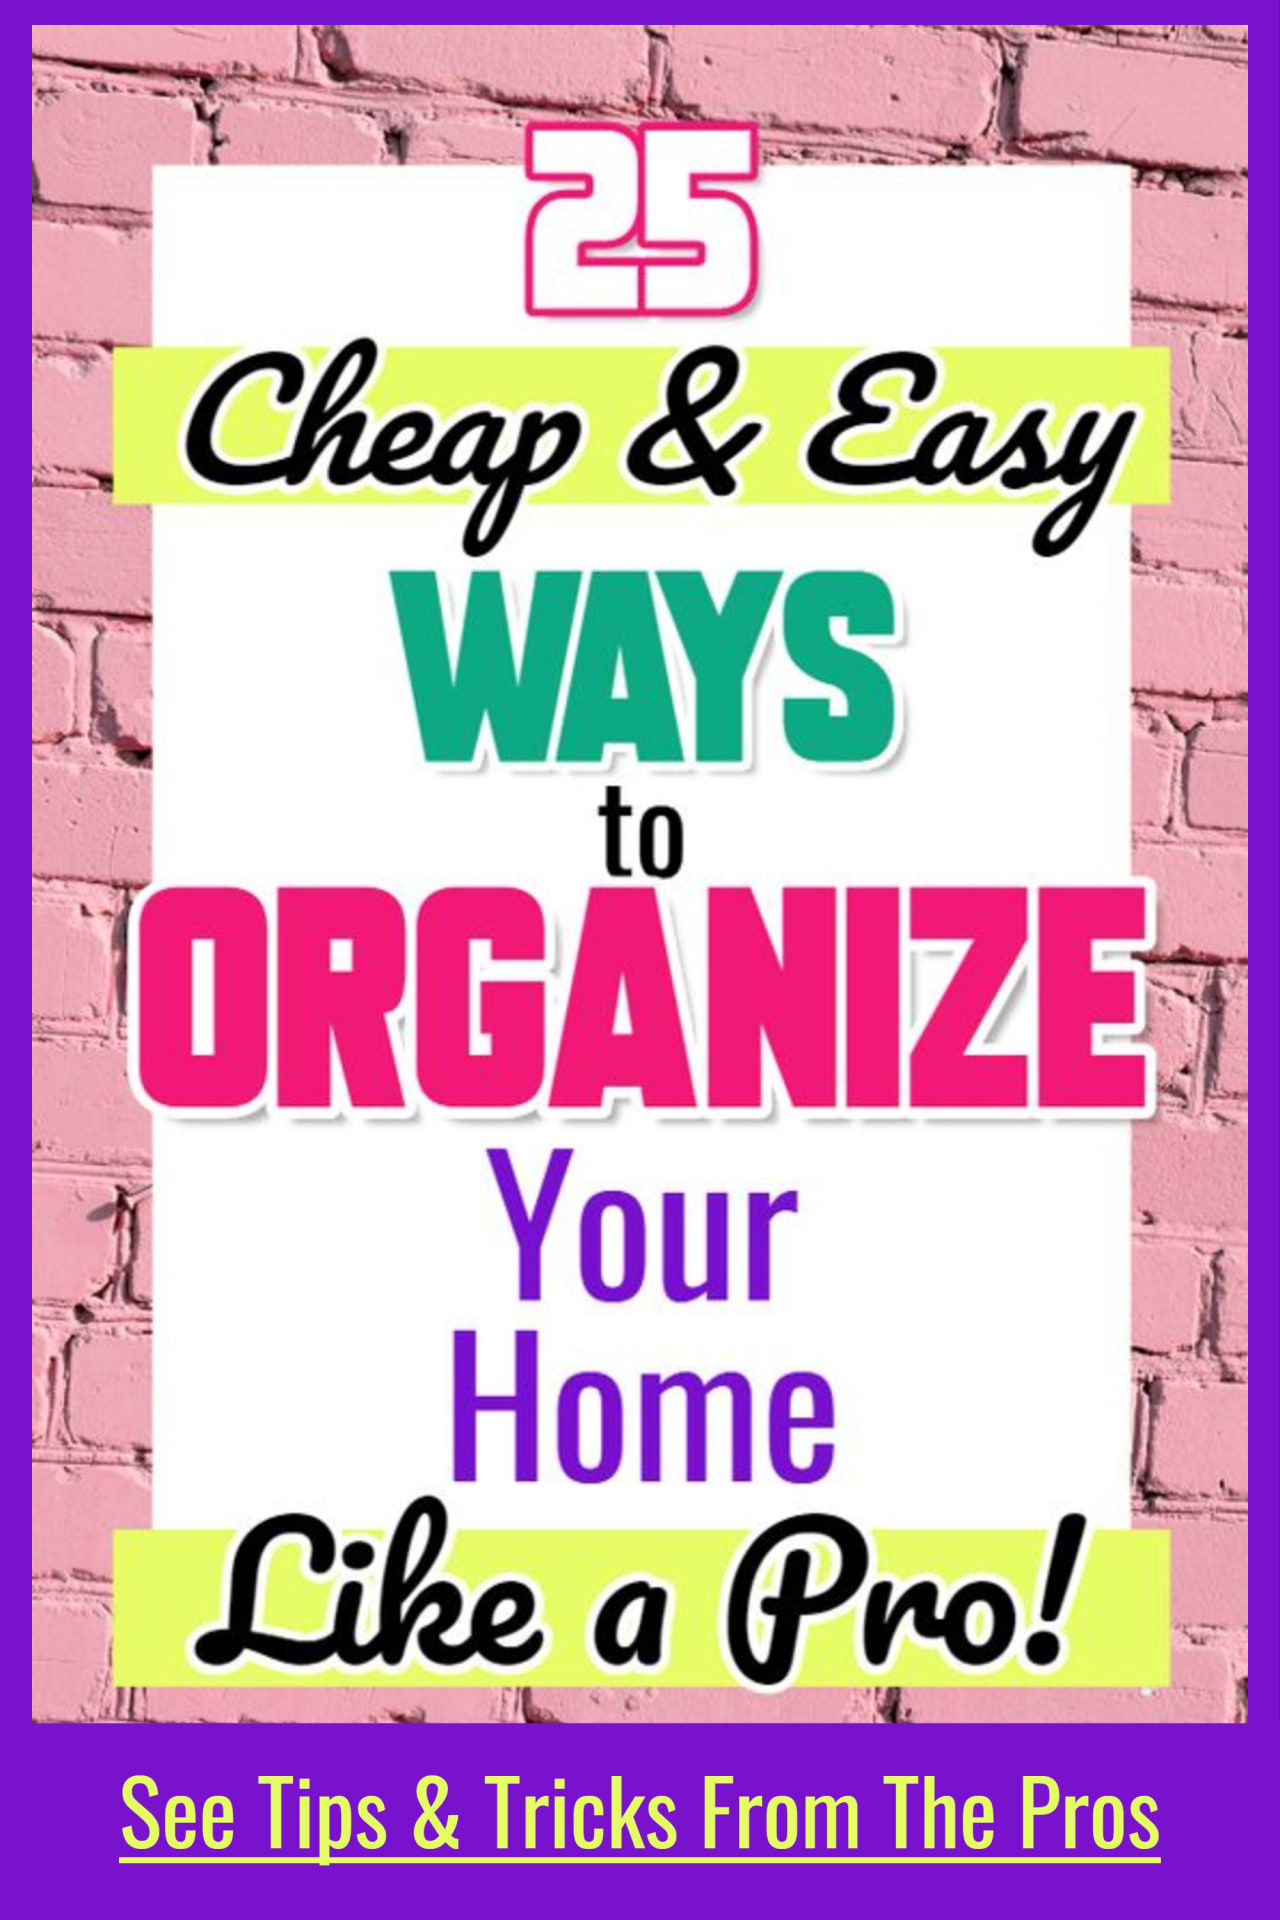 Cleaning tips and tricks from professional organizers to help you declutter and organize your home on a budget even if feeling overwhelmed with no motivation